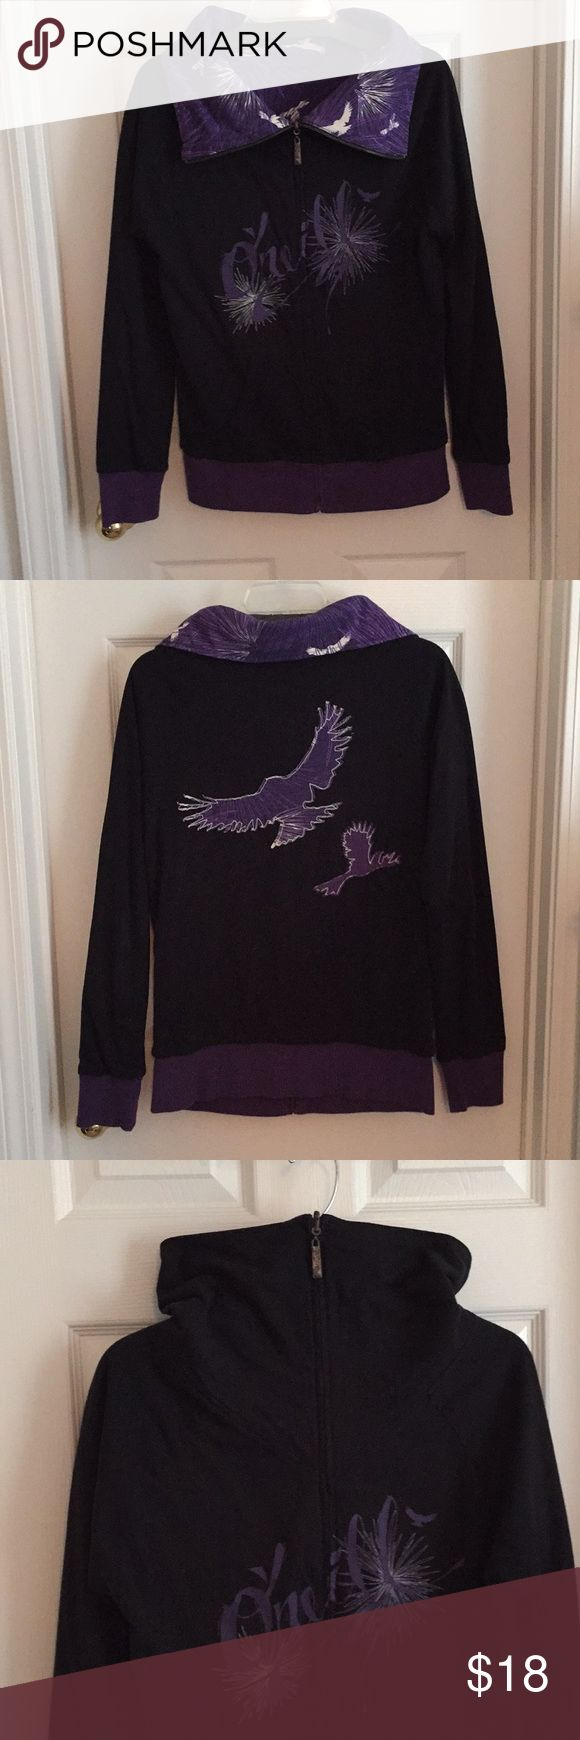 Reversible black and purple knit jacket Reversible black and purple knit jacket with high zip up collar. Pockets on both sides. Purple side has white bird motif. Worn once, condition is new. 100% cotton. Comfortable and great for fall O'Neill Tops Sweatshirts & Hoodies